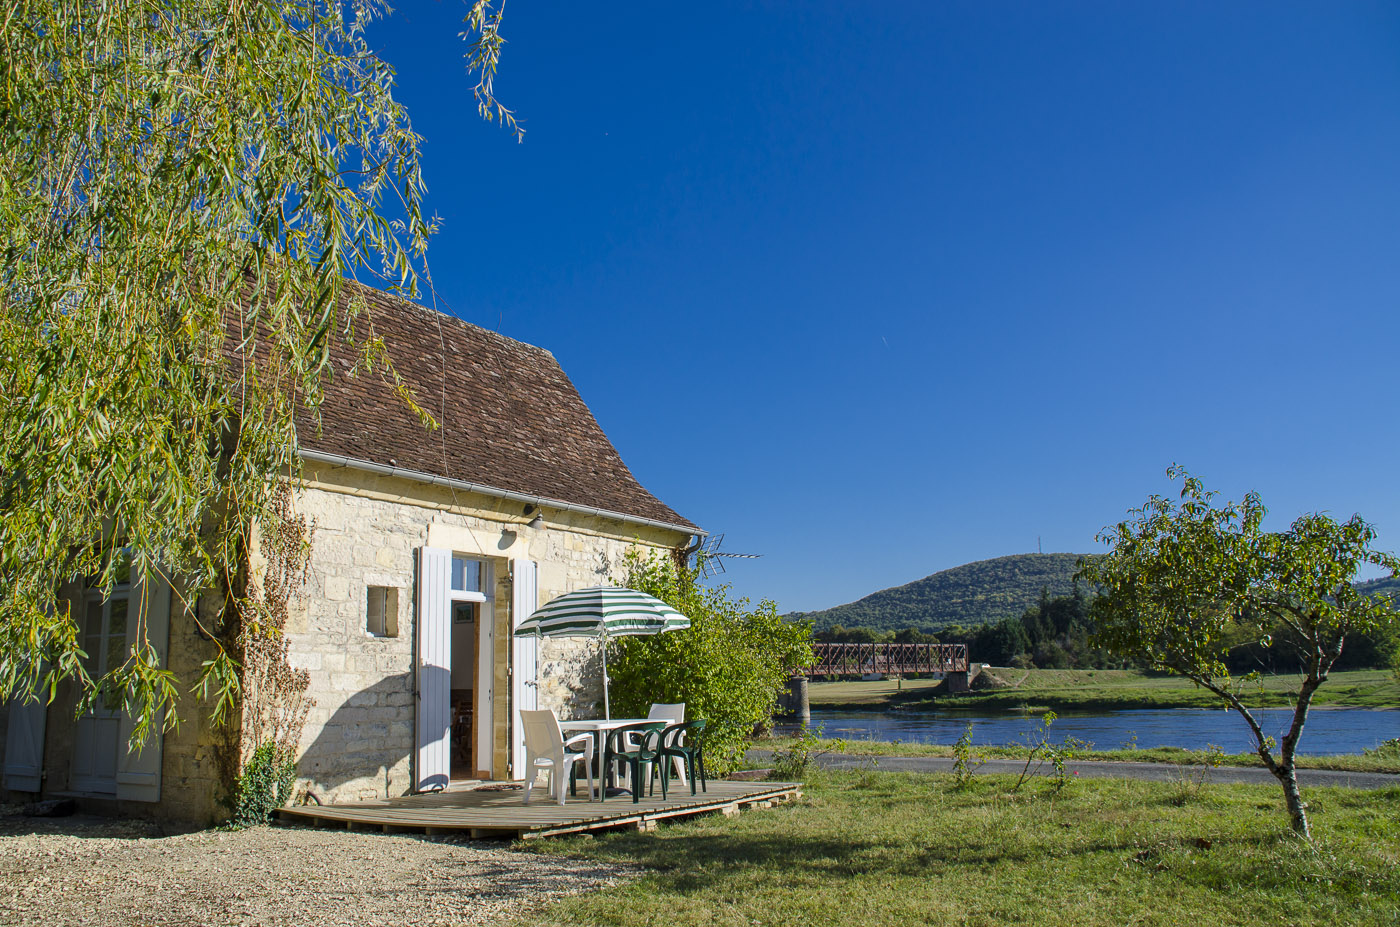 Cotage rental in Perigord facing the river Dordogne